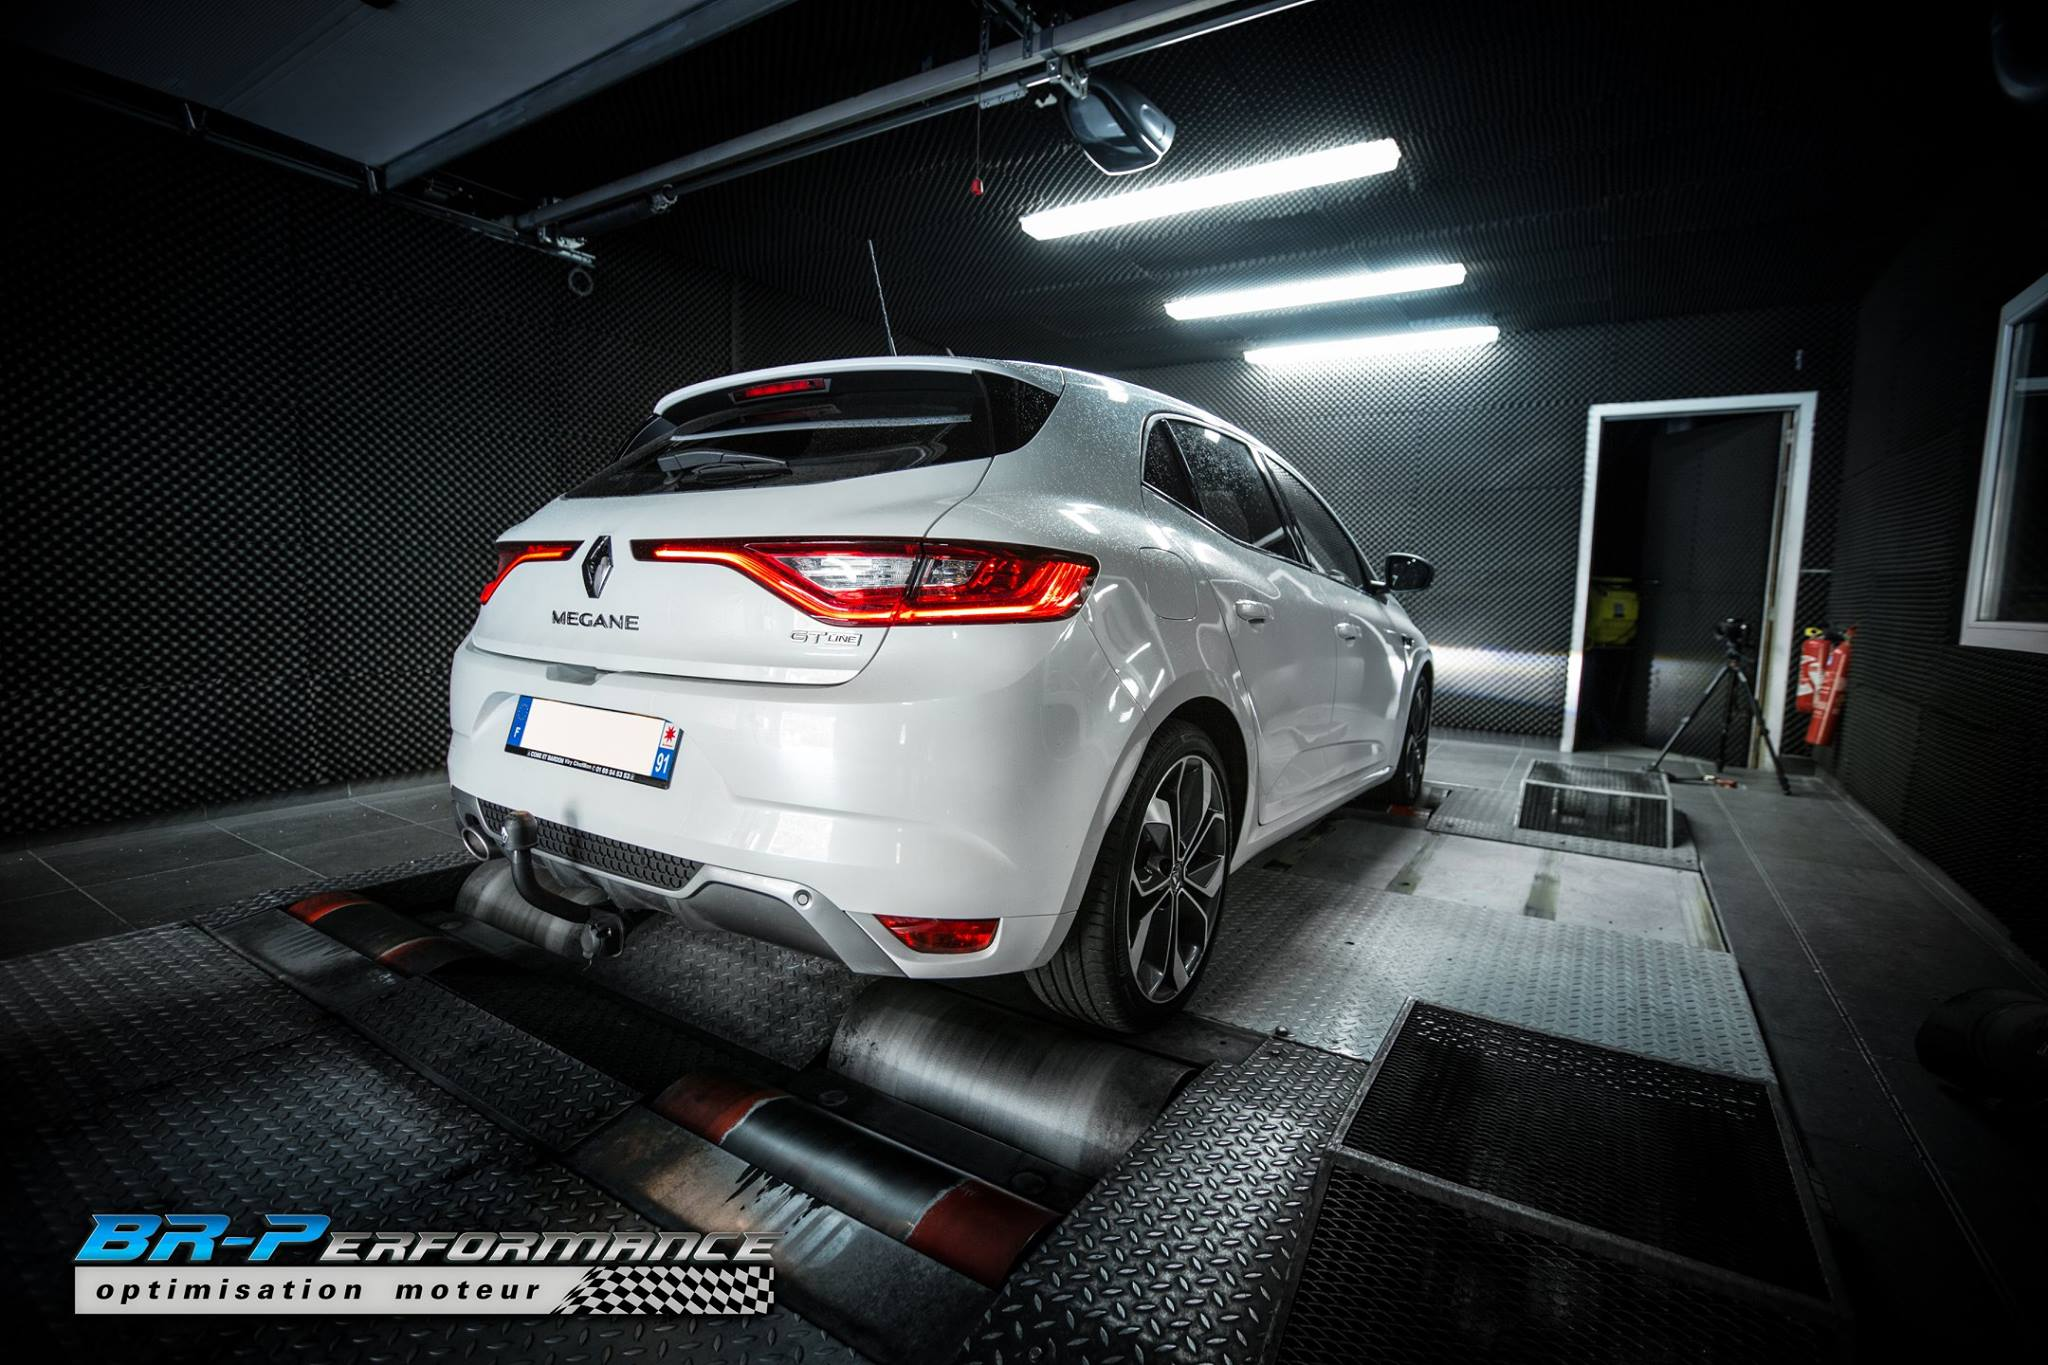 Renault Megane 4 Tuning 1 6 Dci From 130 To 161 Hp Autoevolution